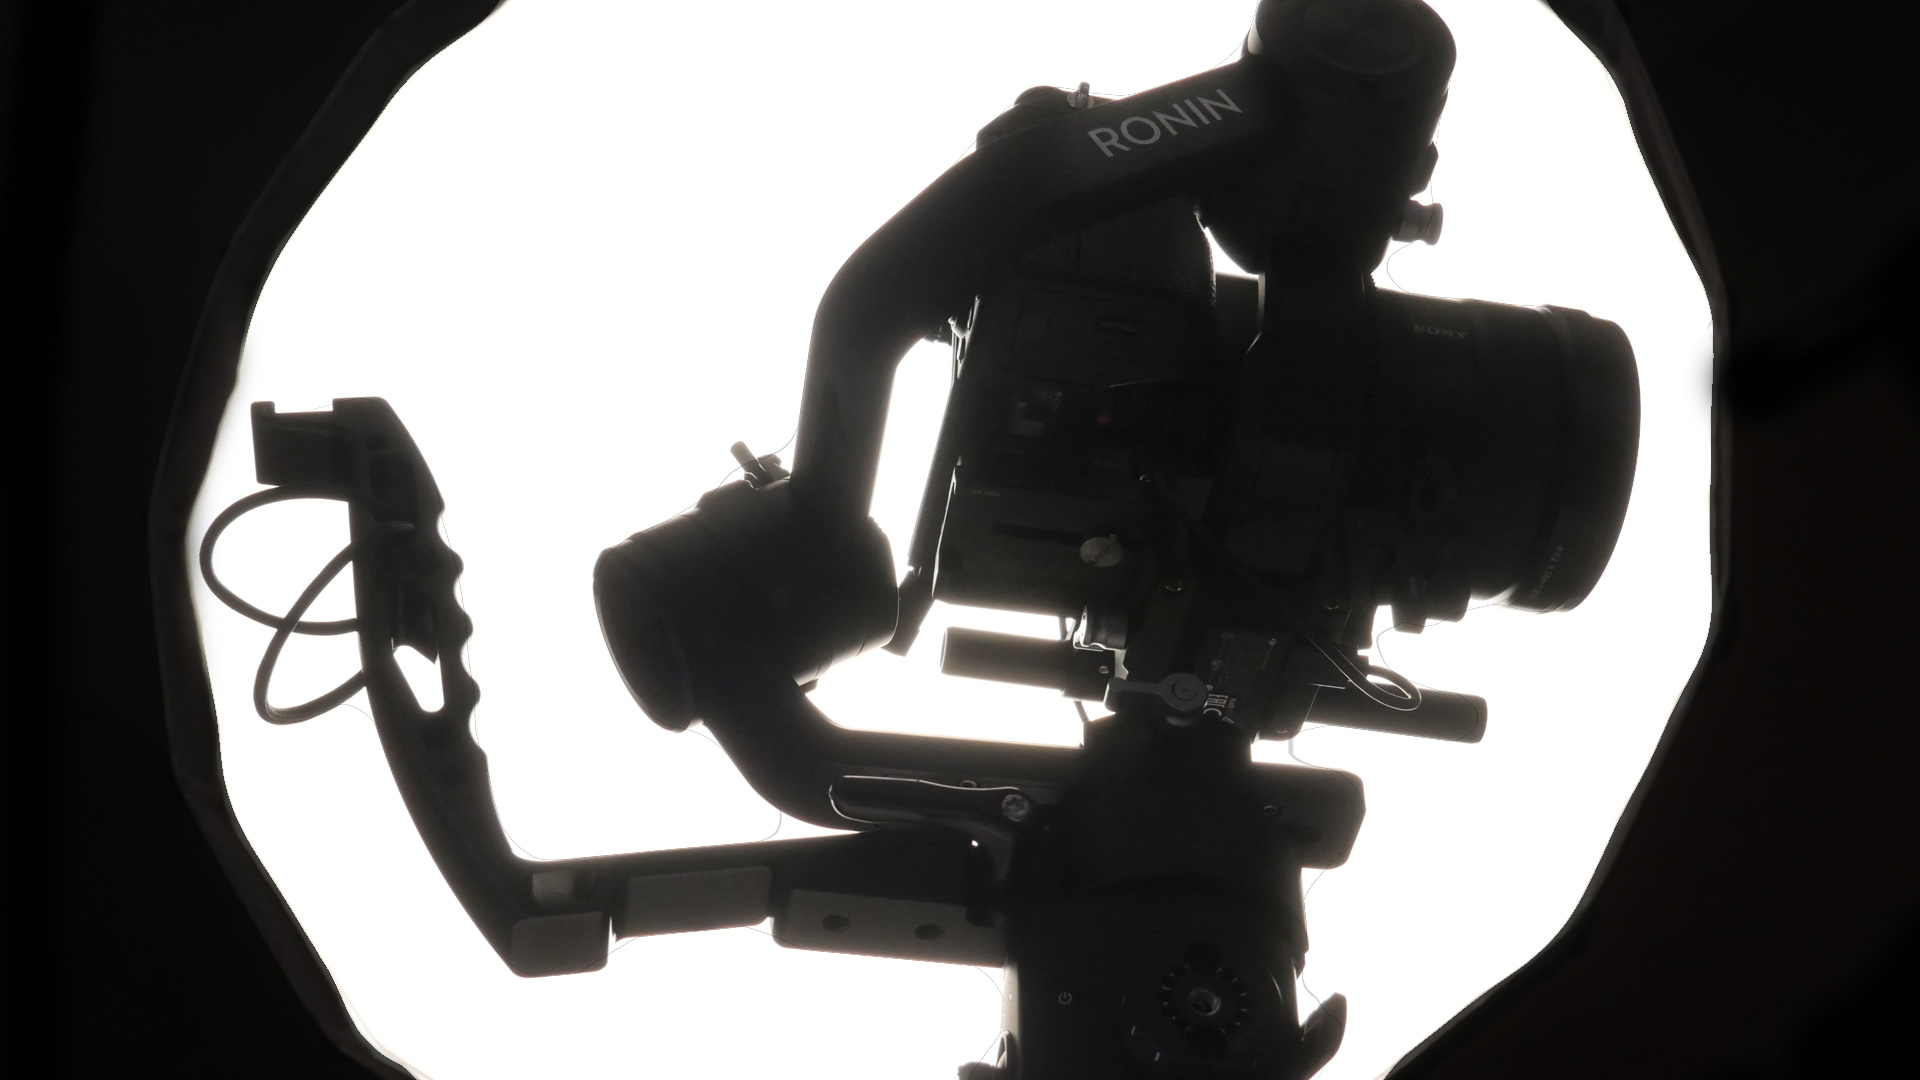 DJI Ronin-S Review & the Accessories You Should Buy - Not So